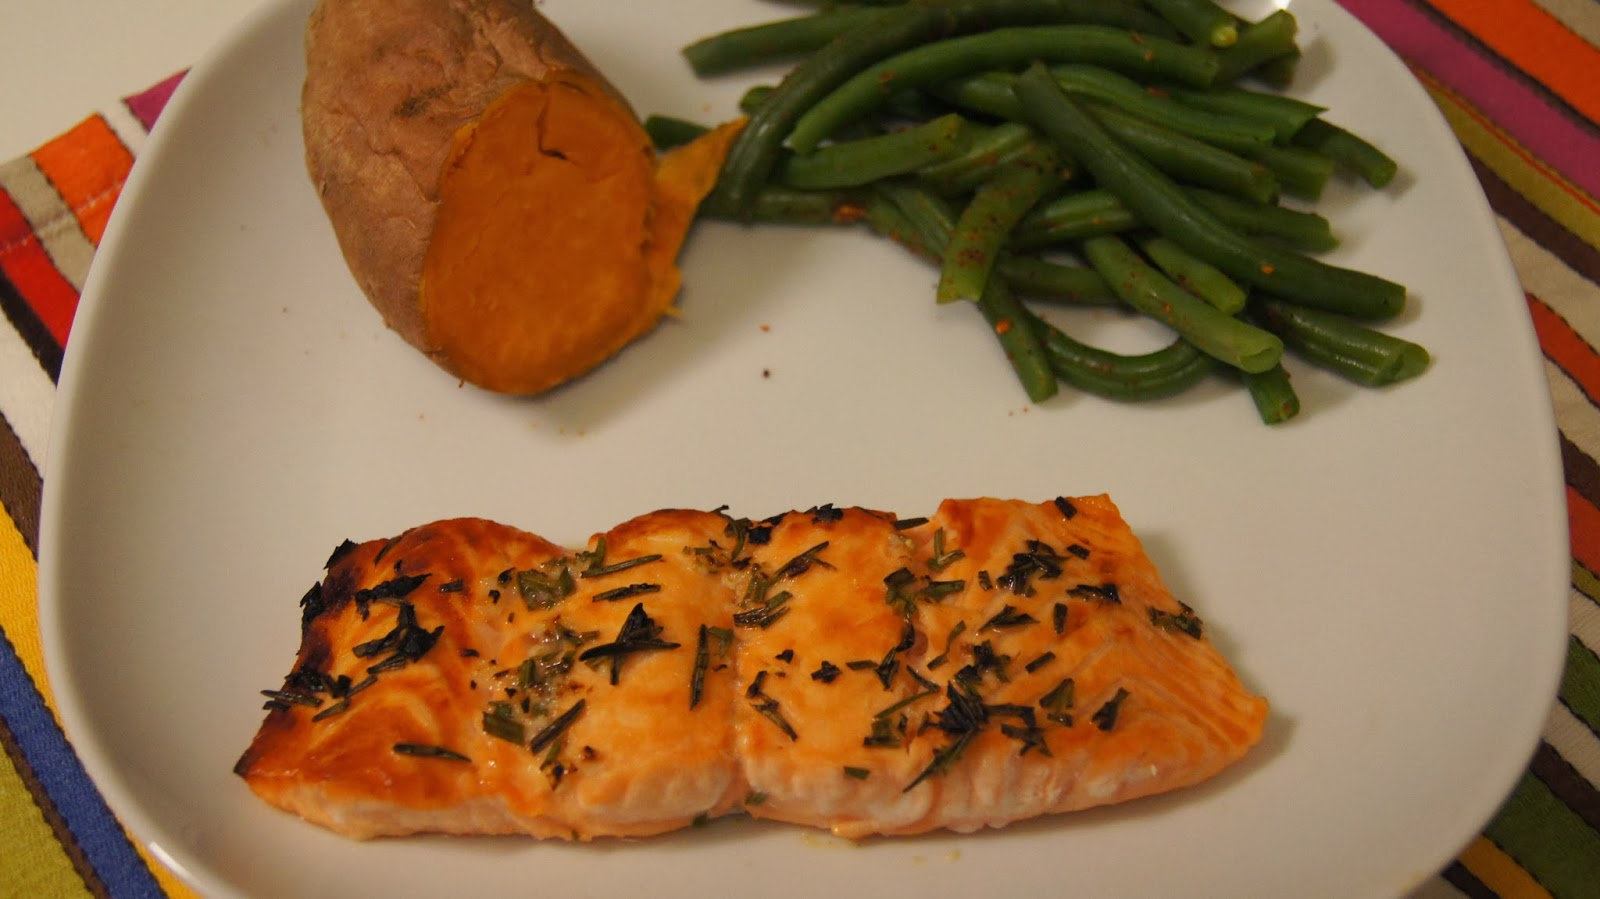 Elizabeth's Dutch Oven: Broiled Salmon with Rosemary